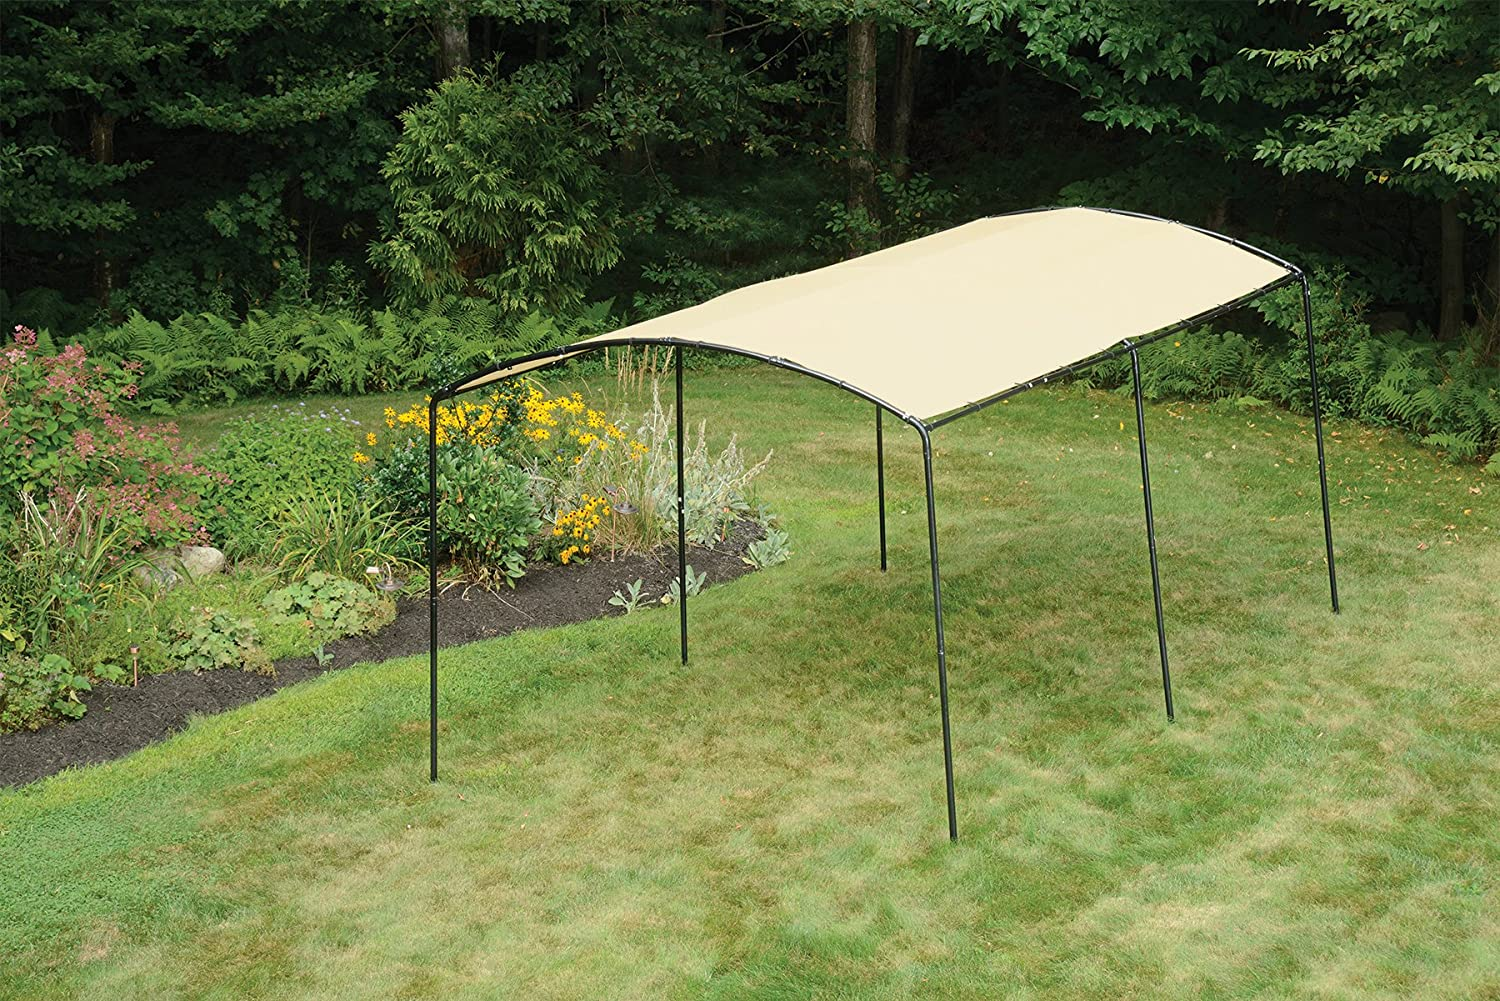 Amazon.com  All-Purpose Canopy Series Monarc Canopy 9 x 16 ft. / 2 7 x 4 9m  Garden u0026 Outdoor & Amazon.com : All-Purpose Canopy Series Monarc Canopy 9 x 16 ft ...